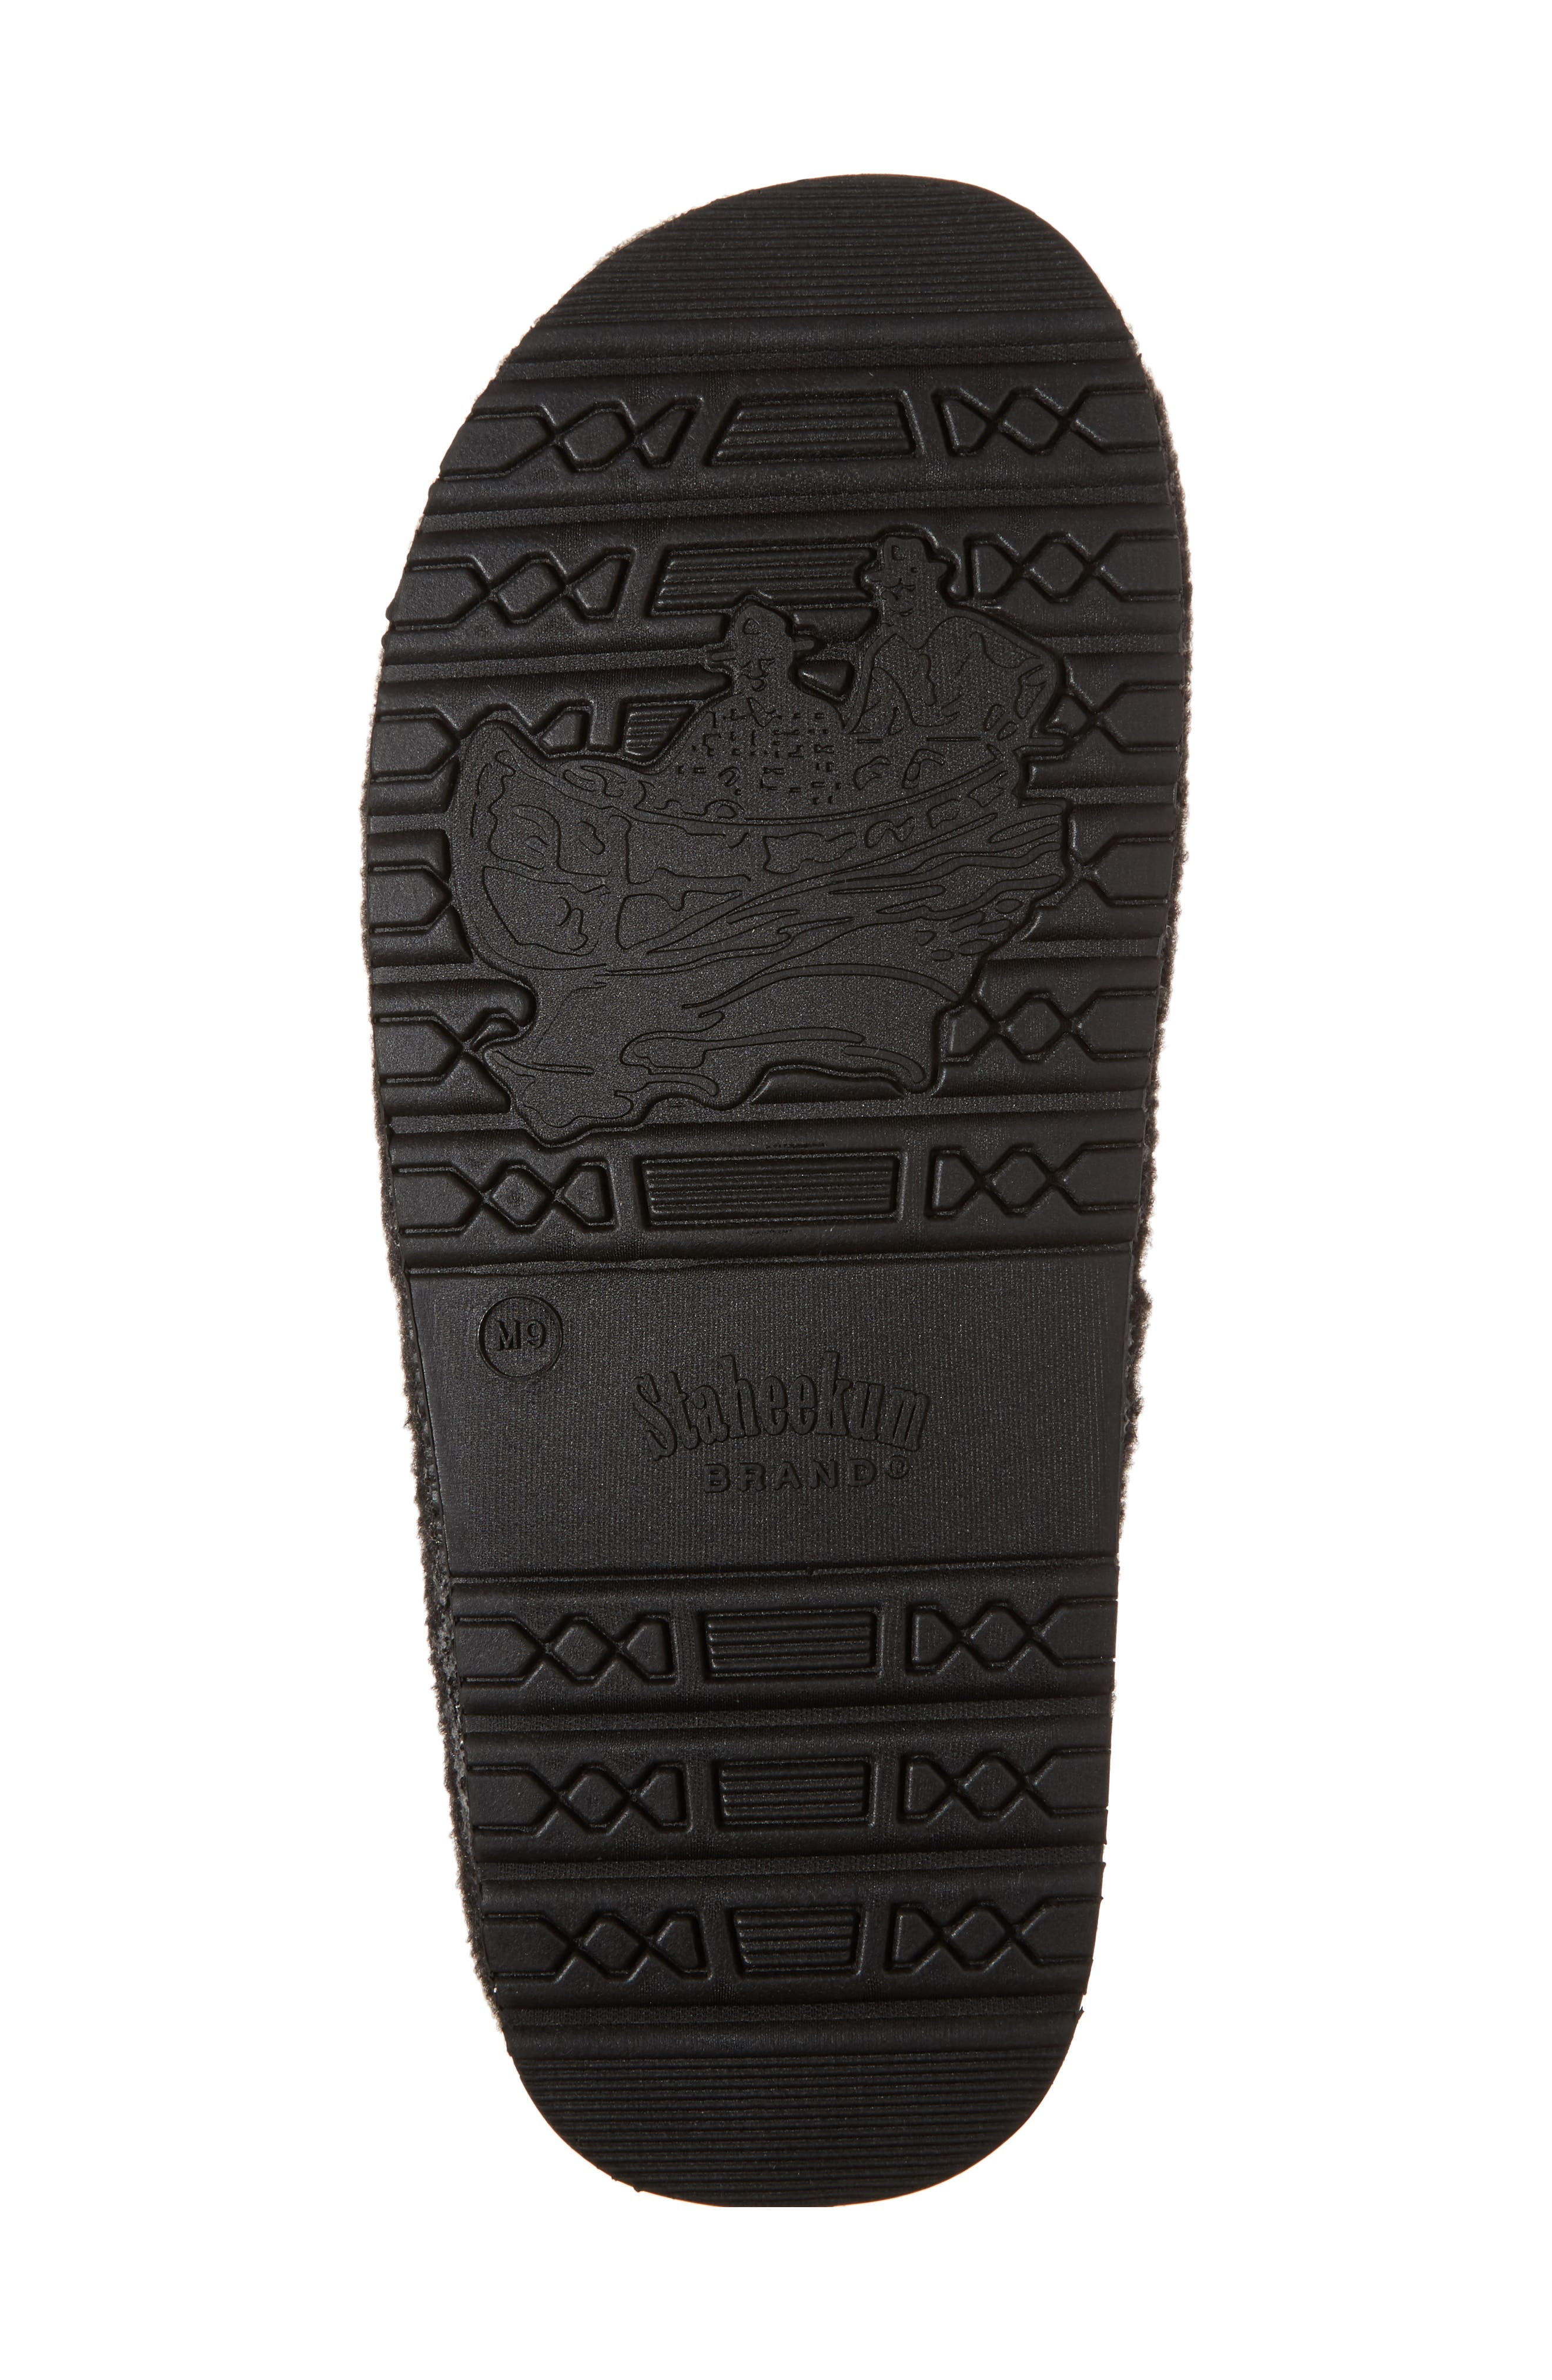 Timber Scuff Slipper,                             Alternate thumbnail 6, color,                             Charcoal Felt/ Polyester